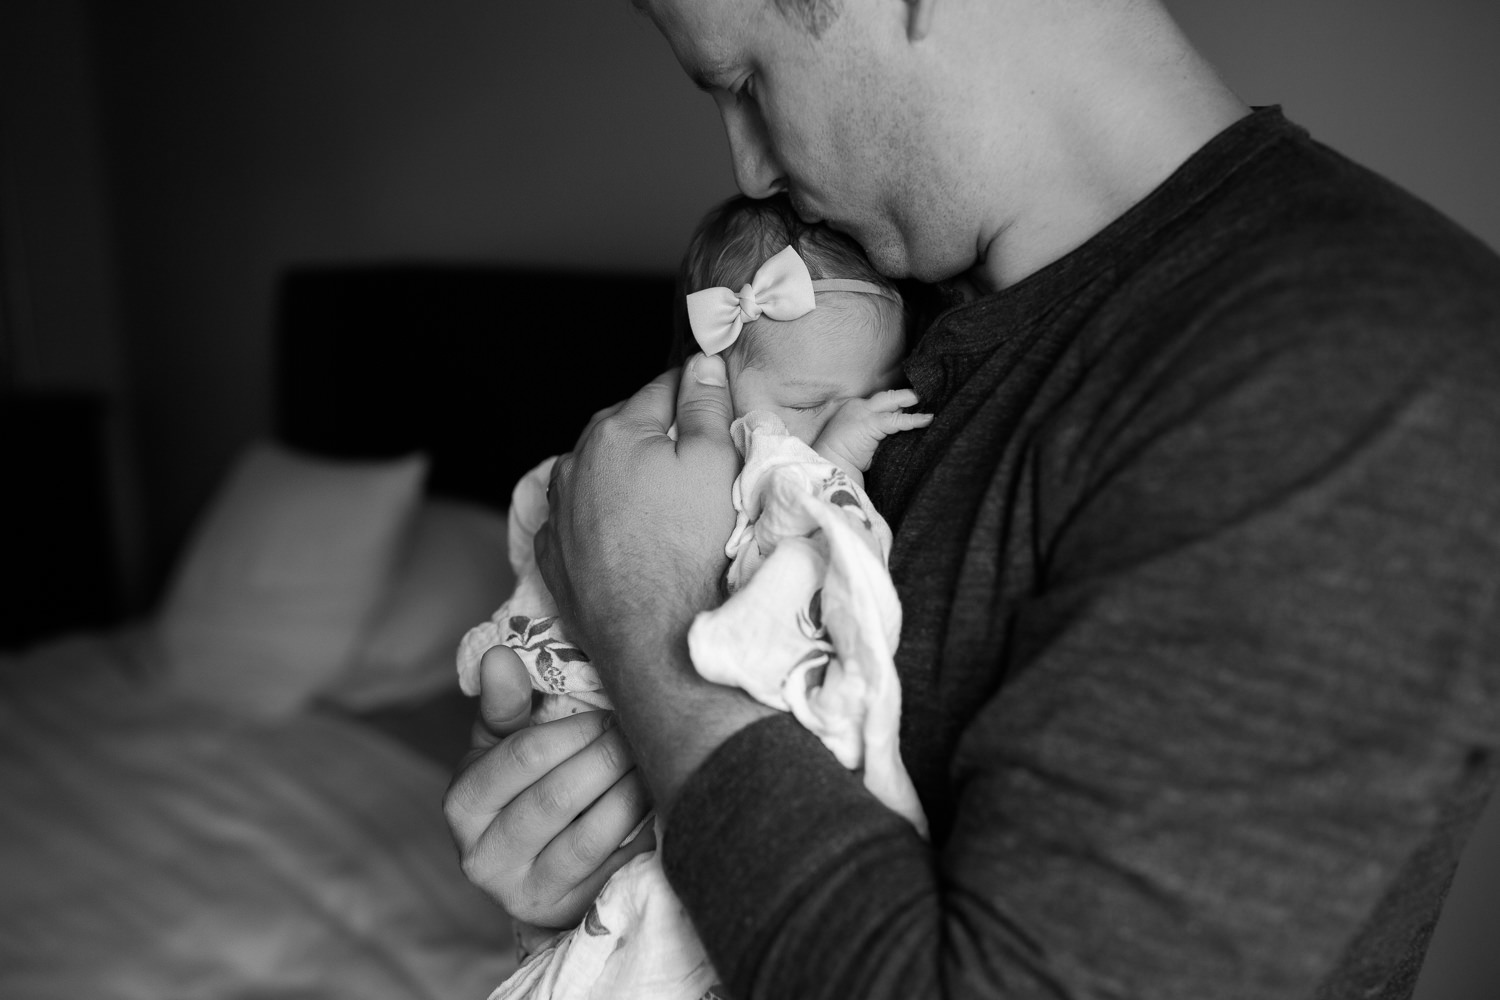 2 week old baby girl wrapped in swaddle sleeping on dad's chest, father kissing daughter on top of head - Newmarket Lifestyle Photos